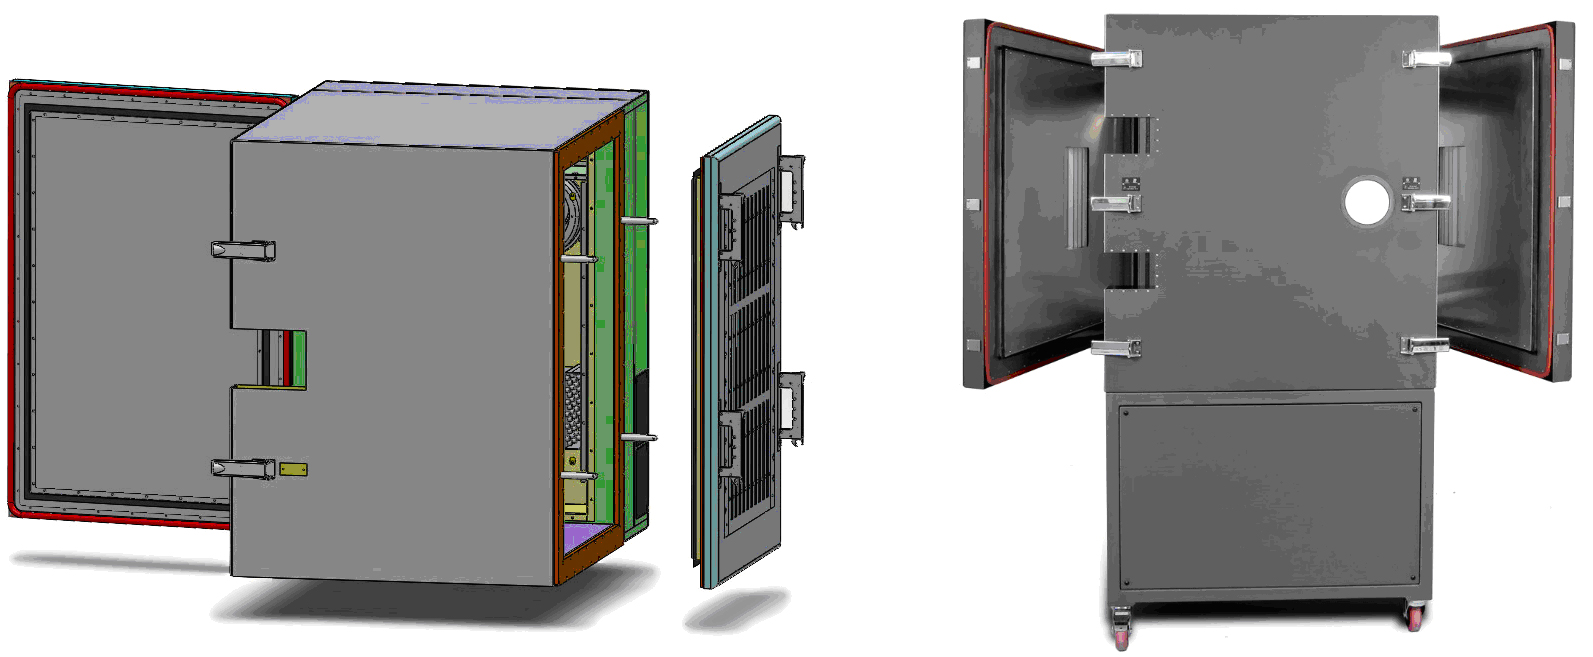 Figure 6. Combination hinged and removable door (left). Multiple hinged doors – opposing or adjacent sides (right).